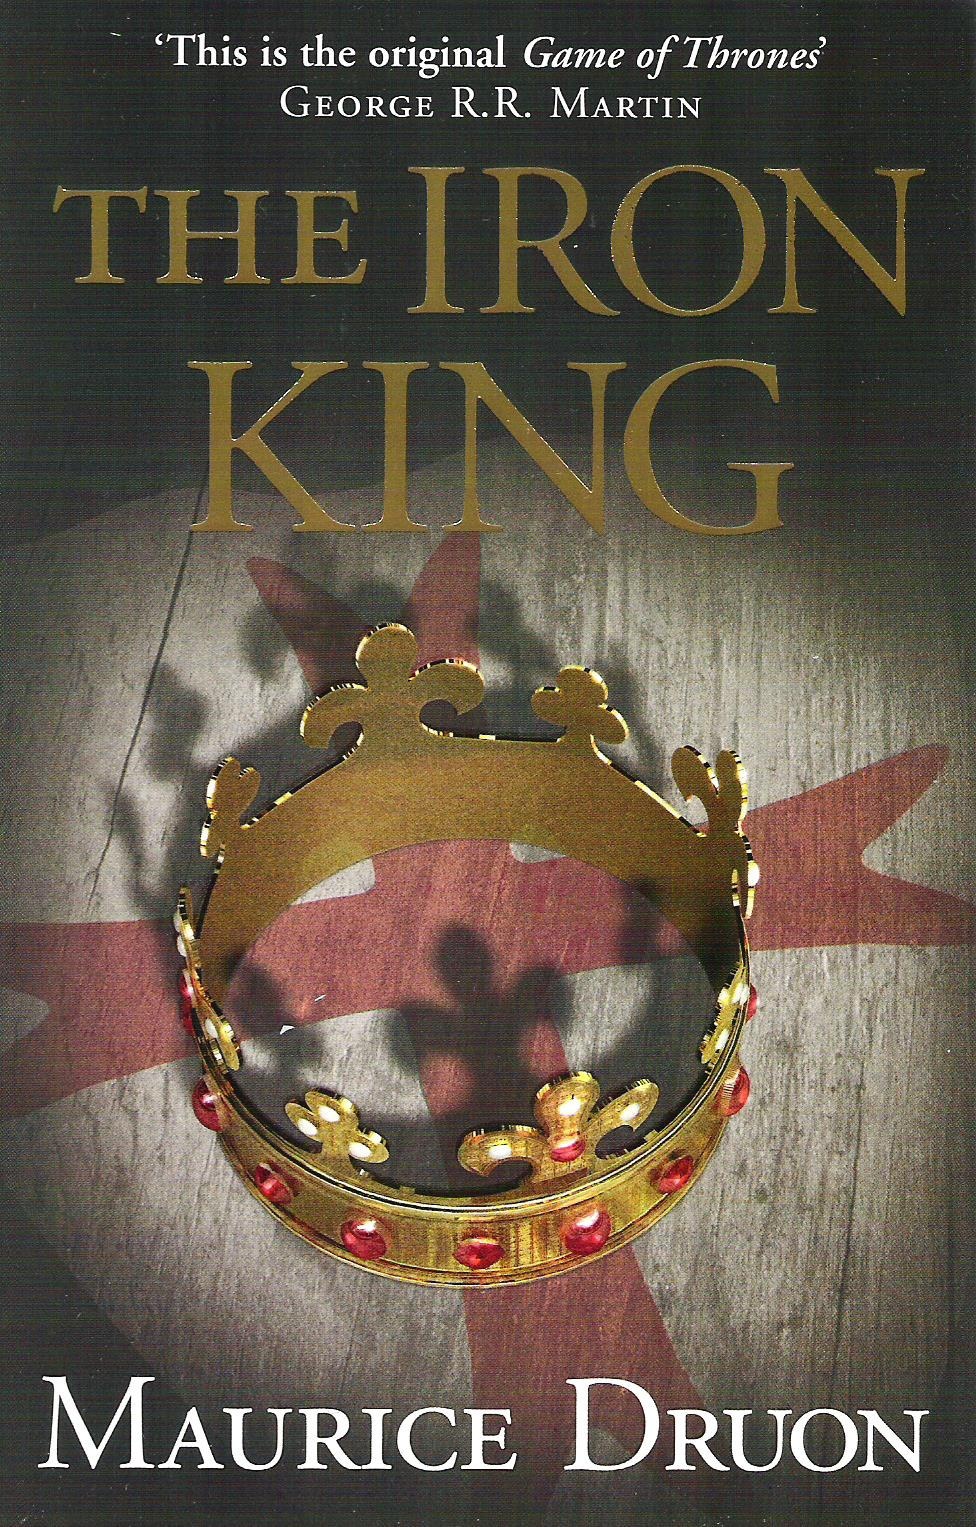 iron king droun review